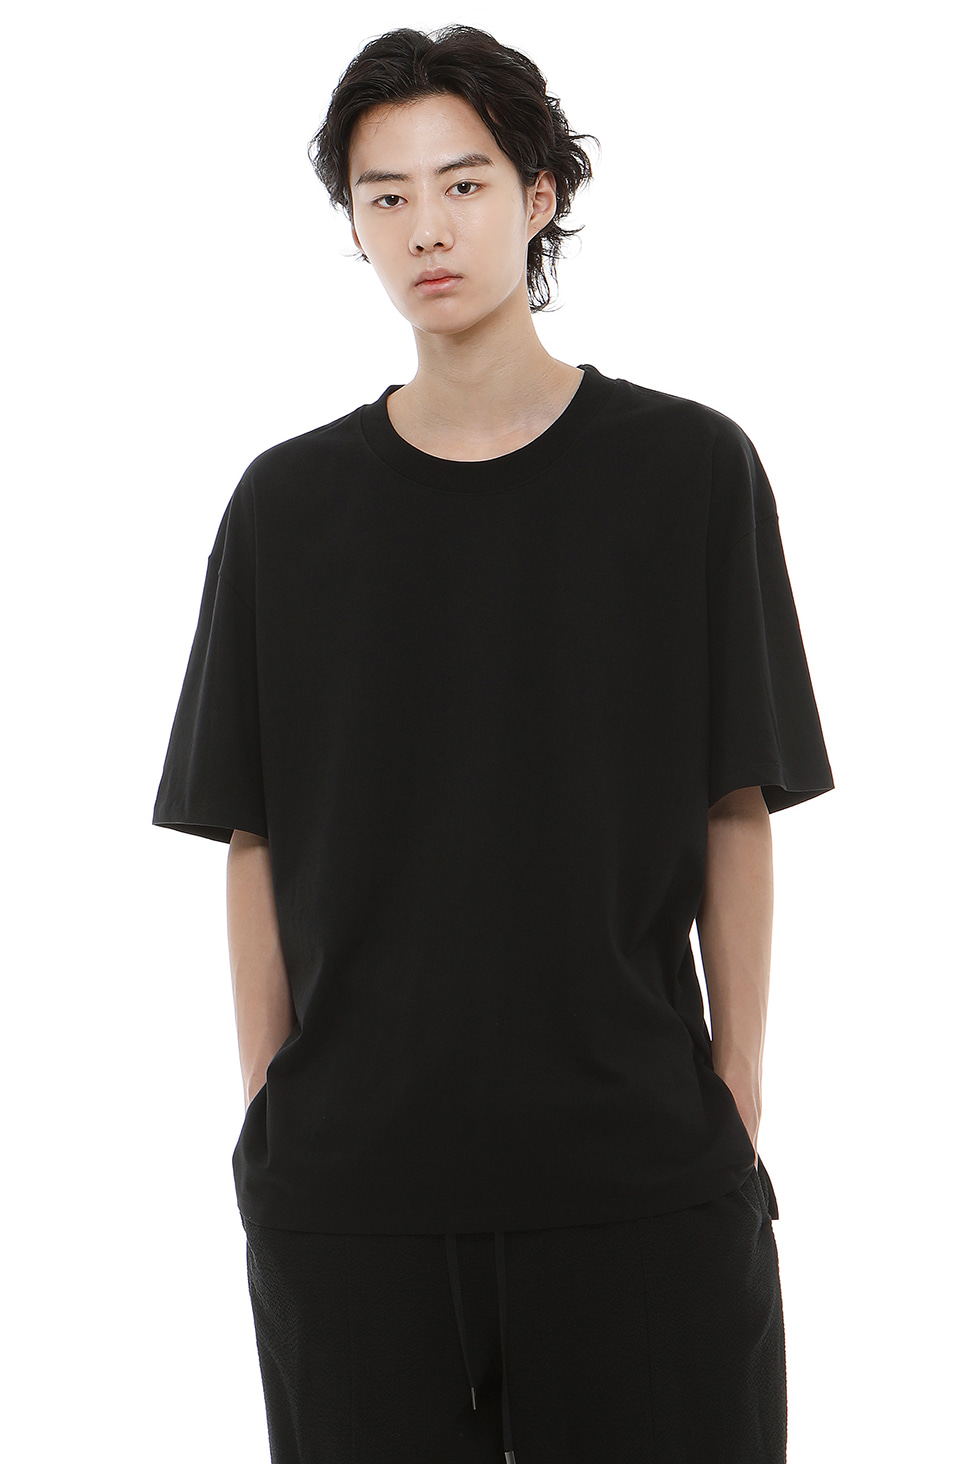 T001 / Cotton 100 Layered Black T